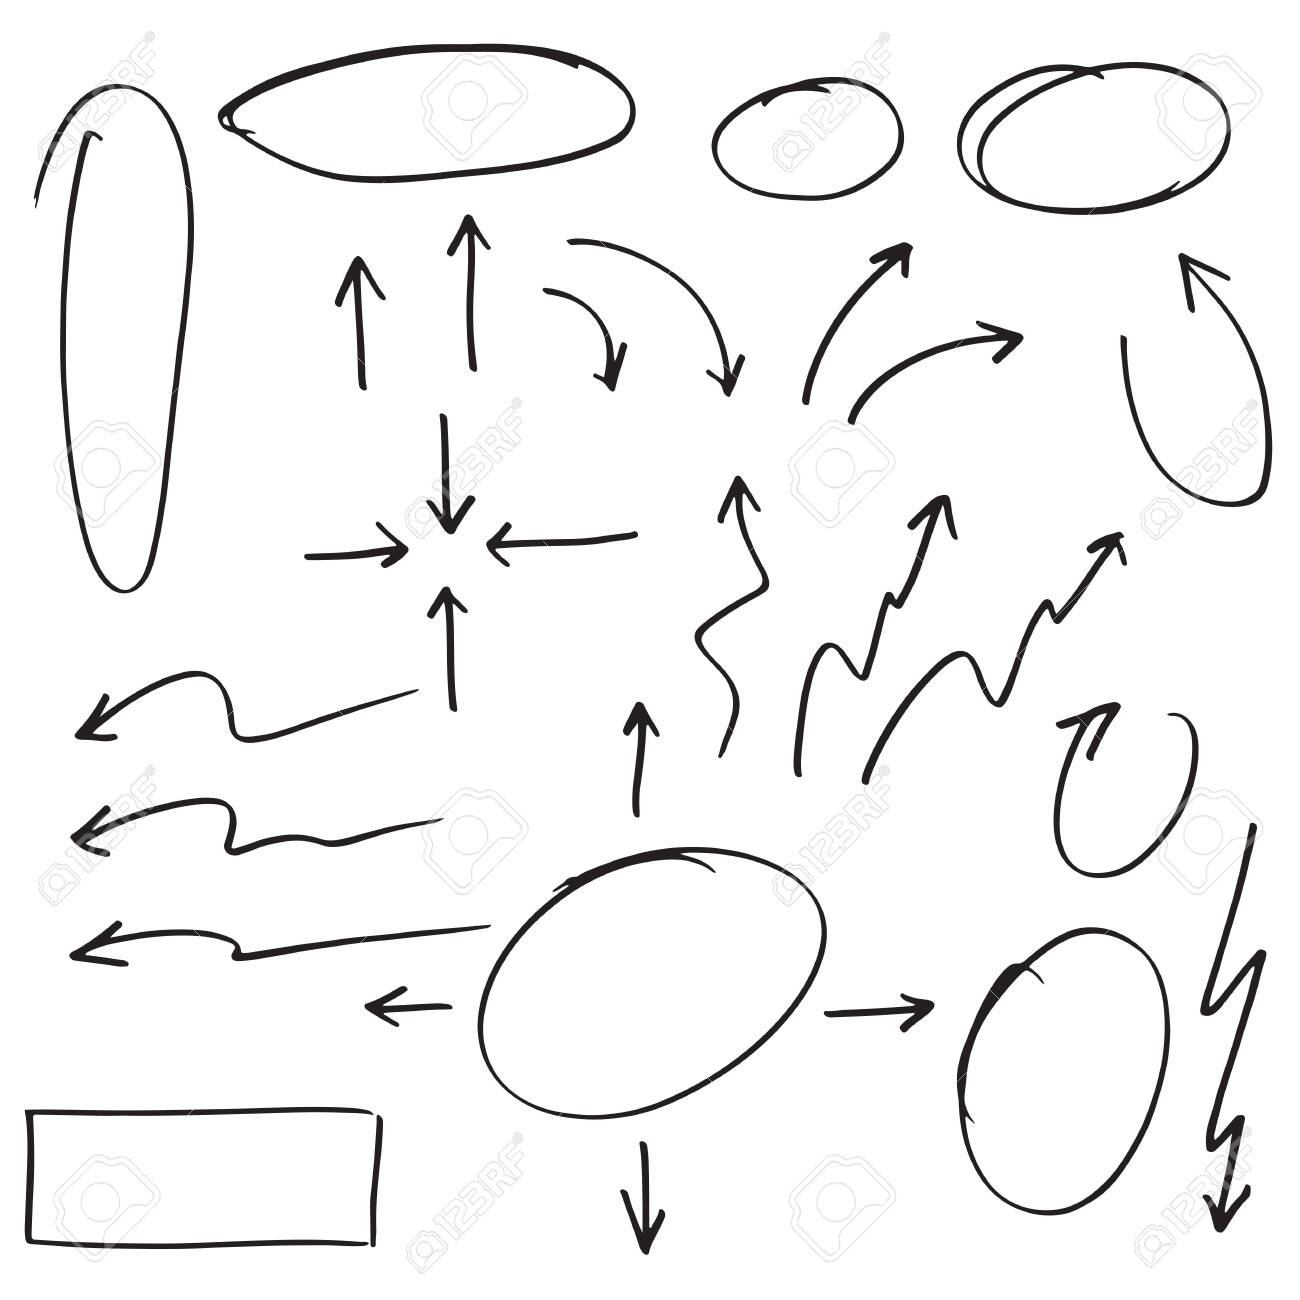 doodle design element. Doodle lines, Arrows, Check mark, circles and curves vector.hand drawn design elements isolated on white background. - 148513871